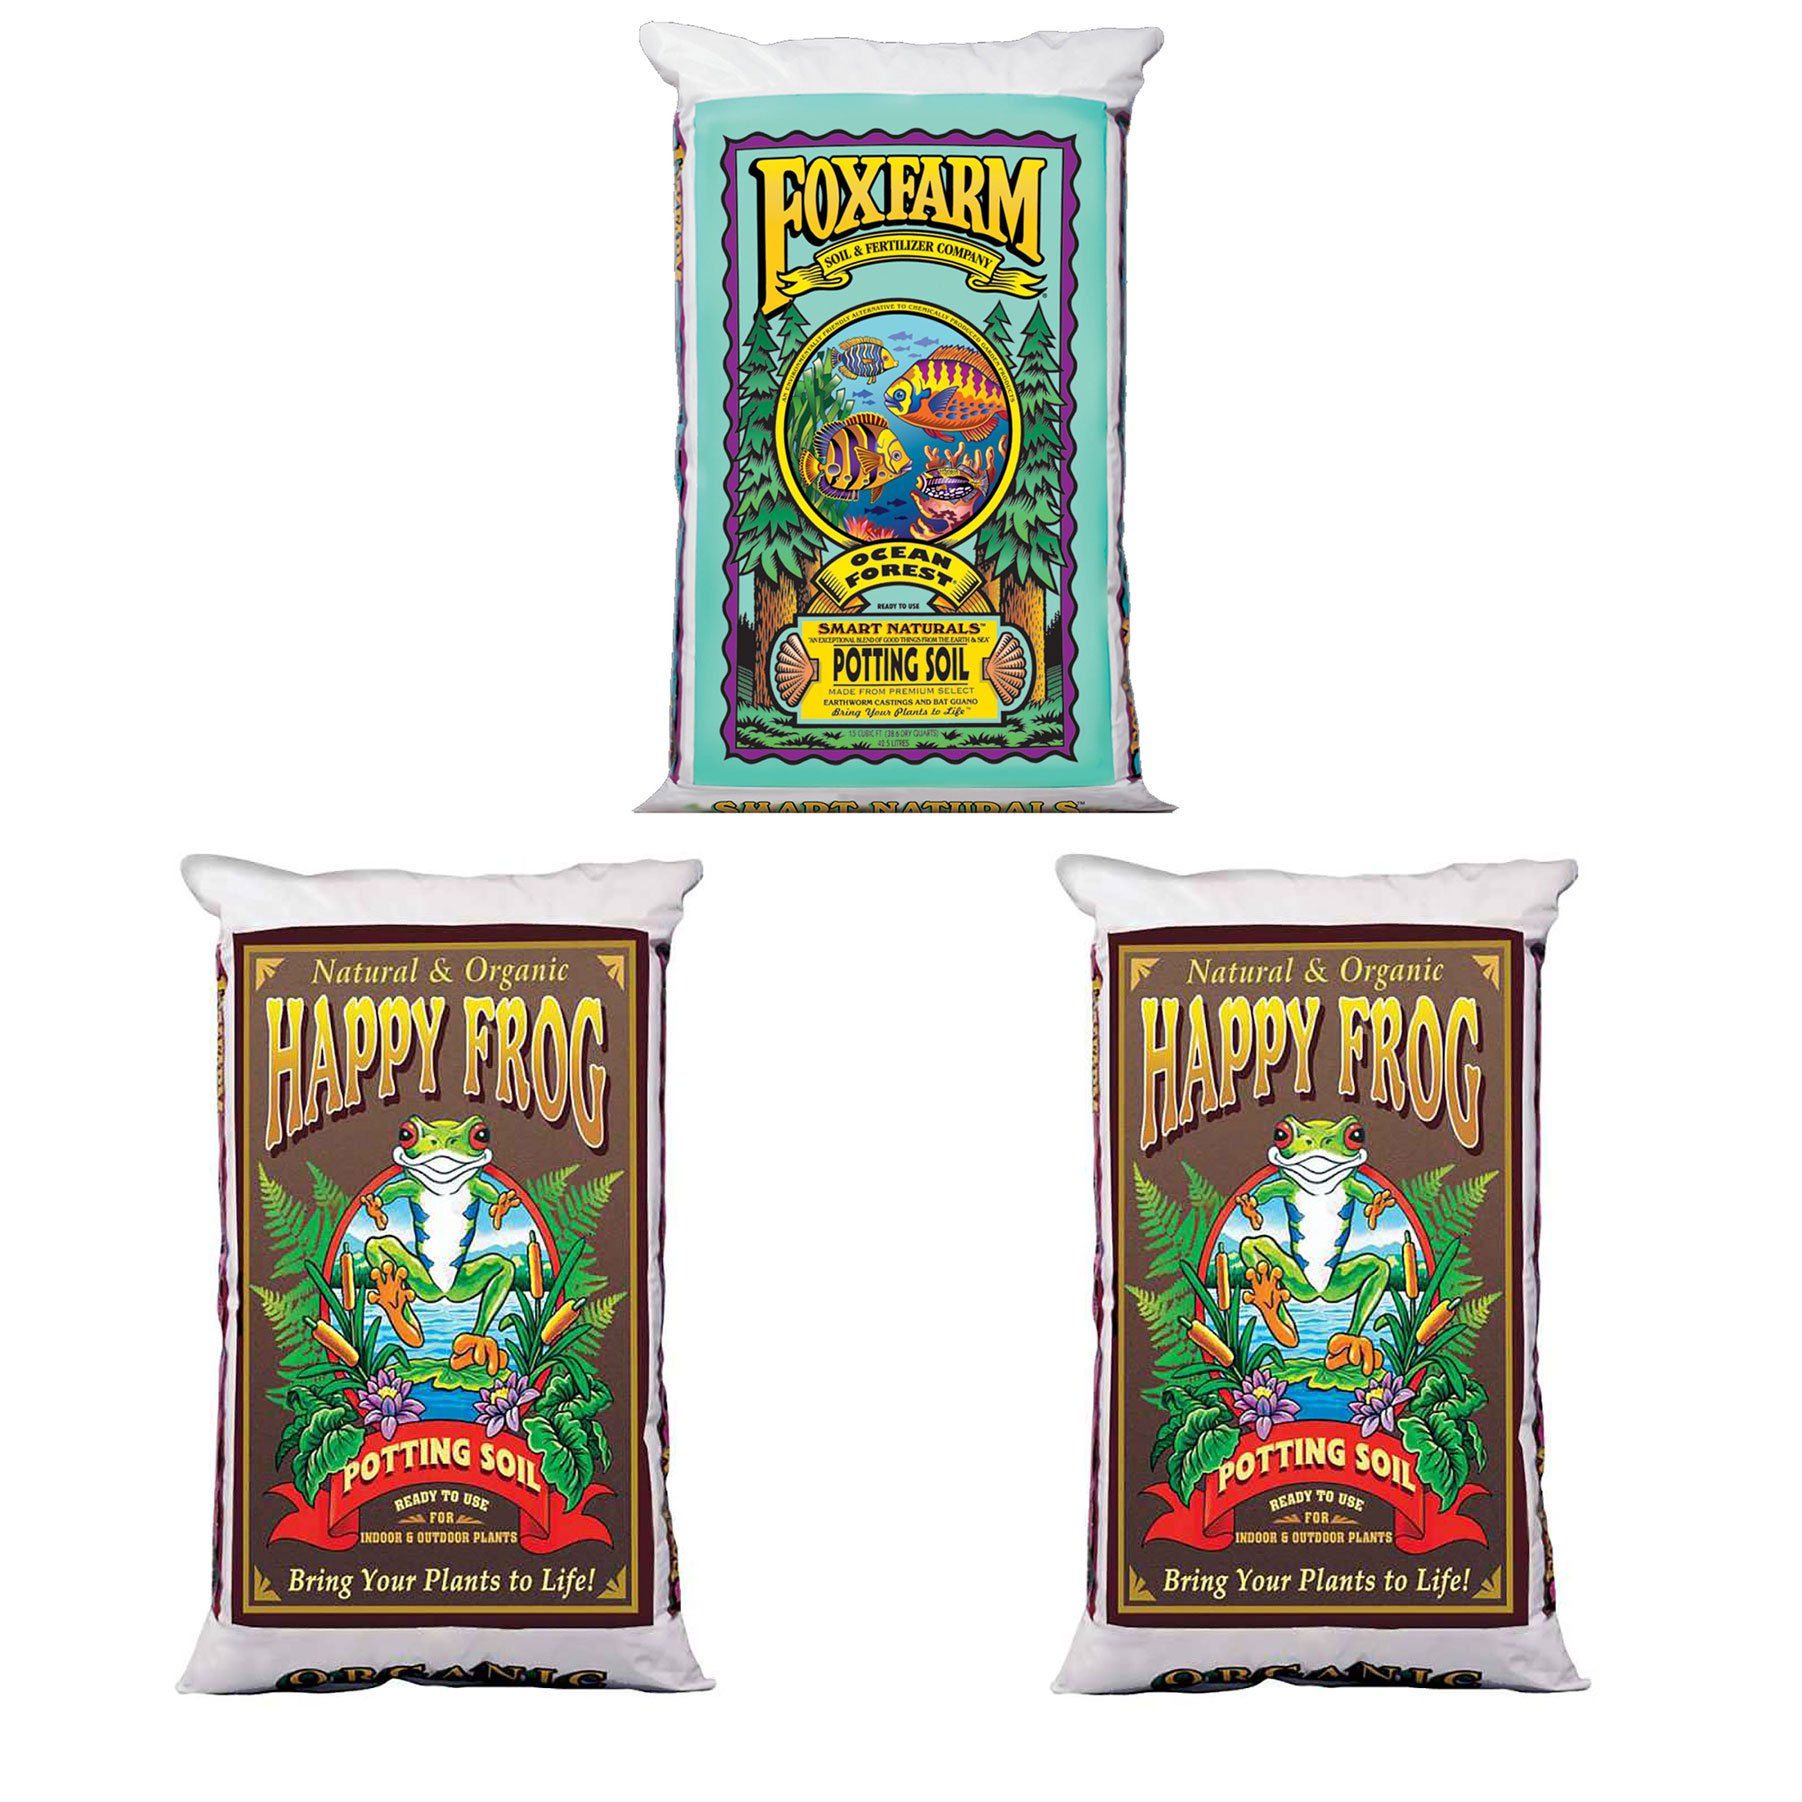 Foxfarm Happy Frog Organic Potting Soil Mix(2 Pack) and Ocean Forest Potting Mix